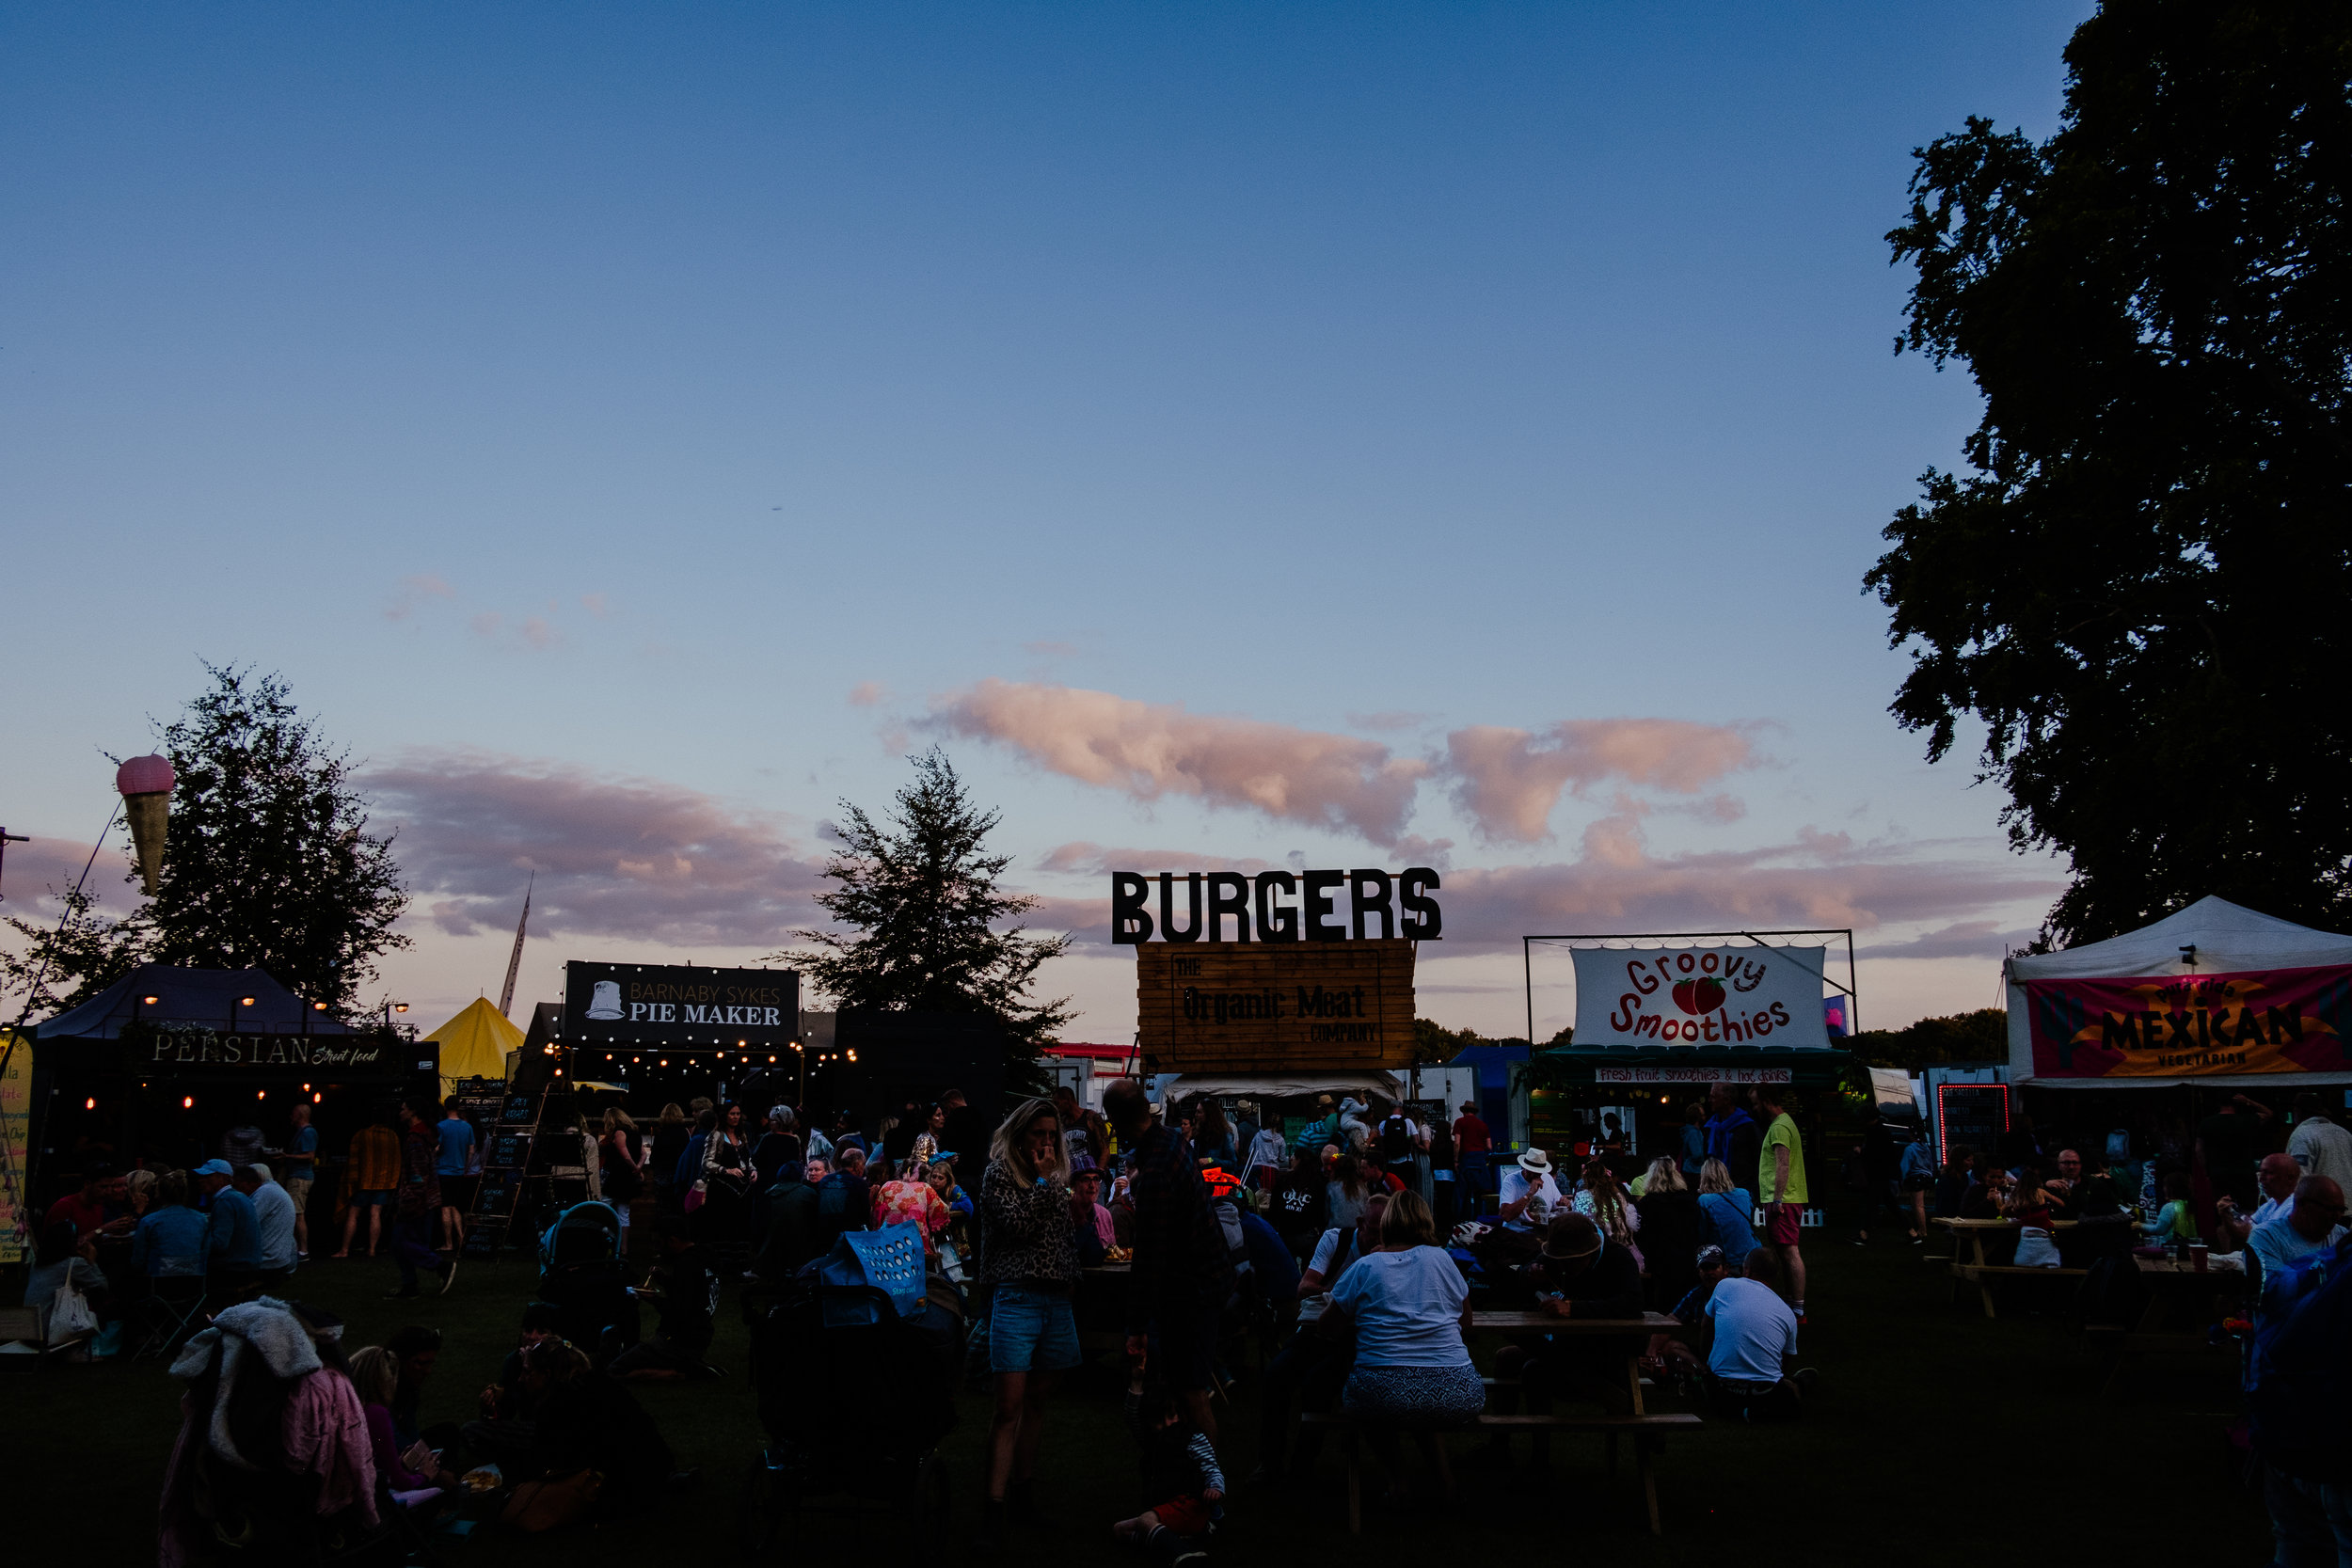 Larmer Tree Festival 2019 food stalls at night